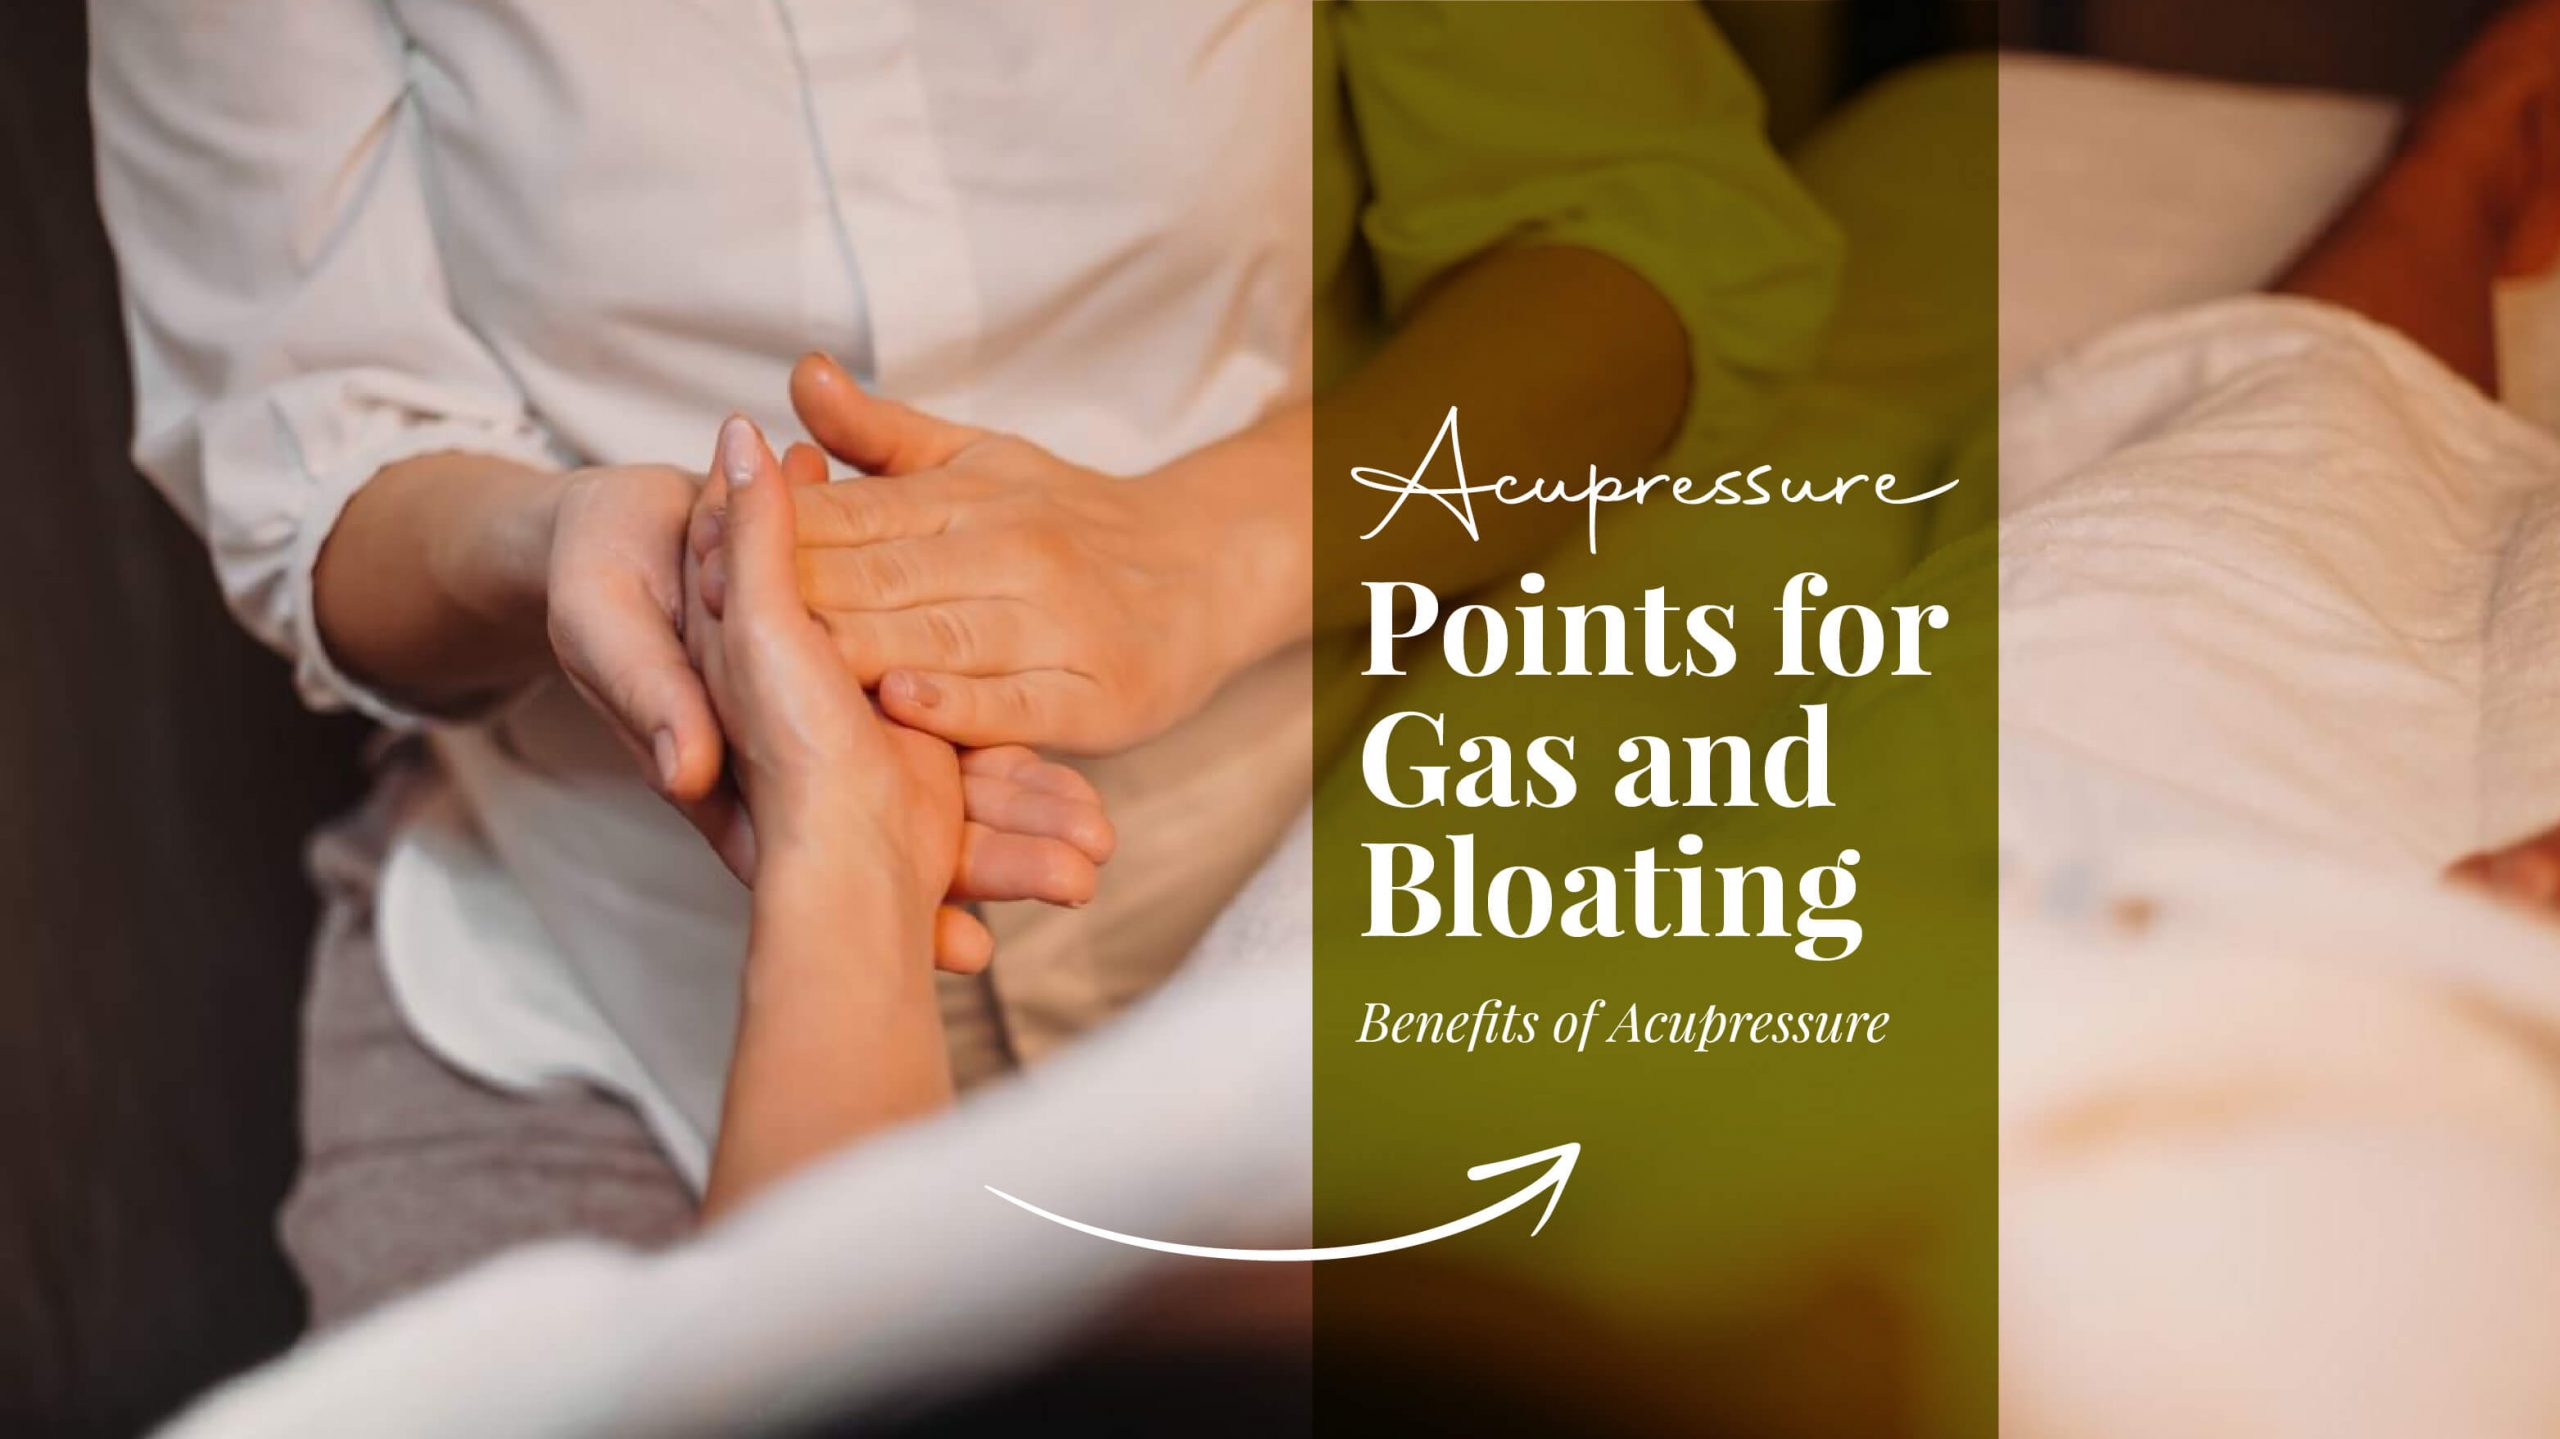 ACUPRESSURE POINTS FOR GAS AND BLOATING